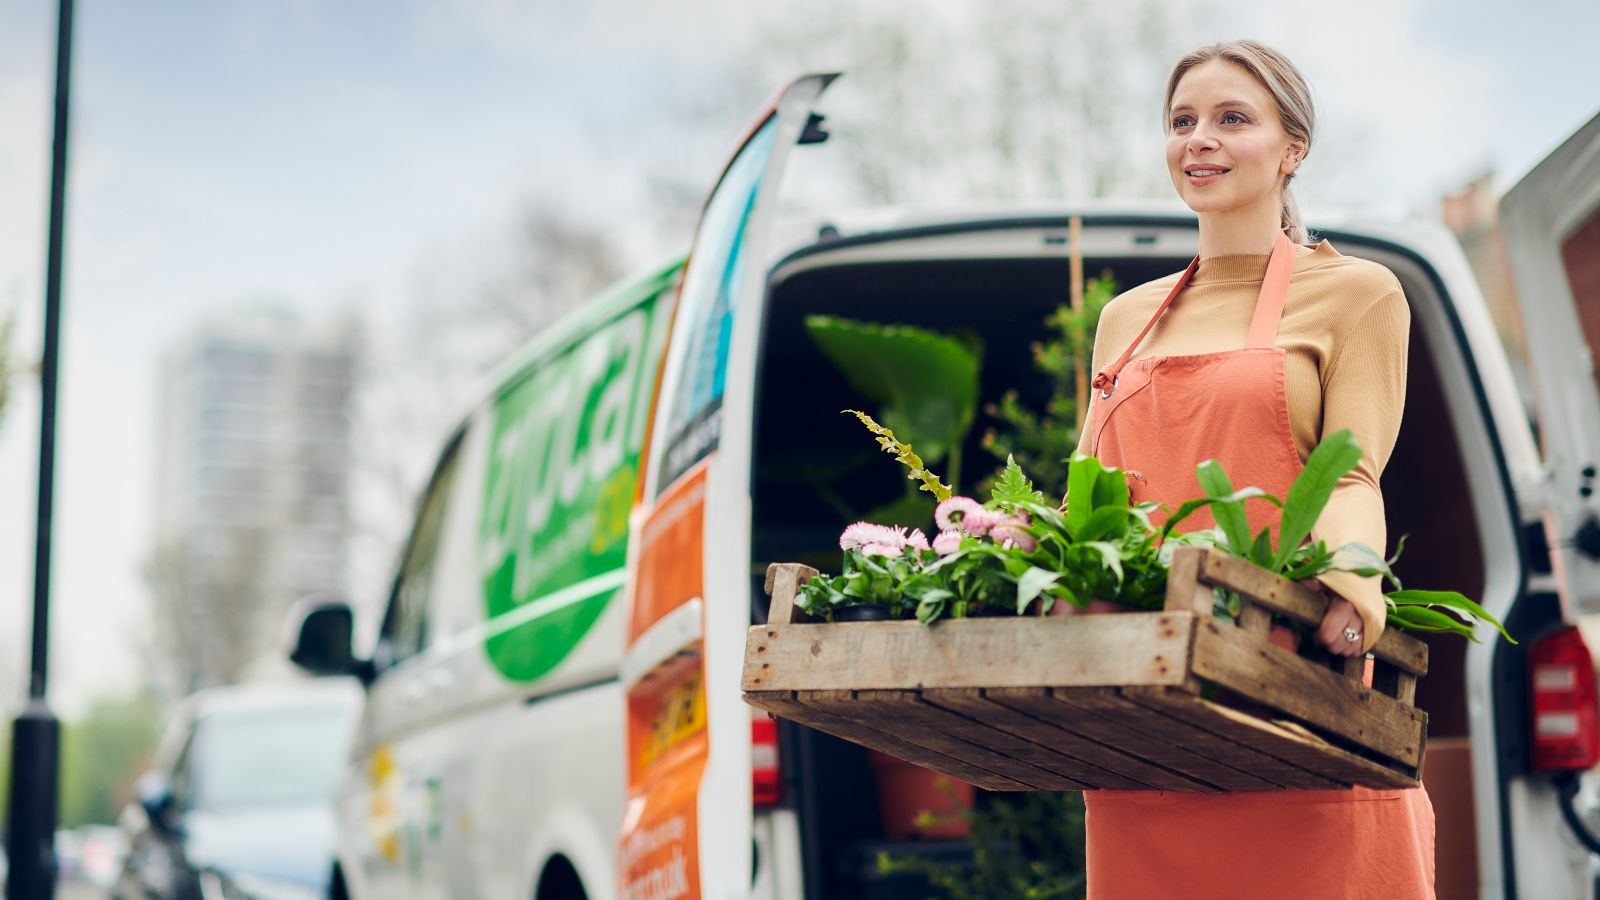 woman delivering flowers using a Zipvan